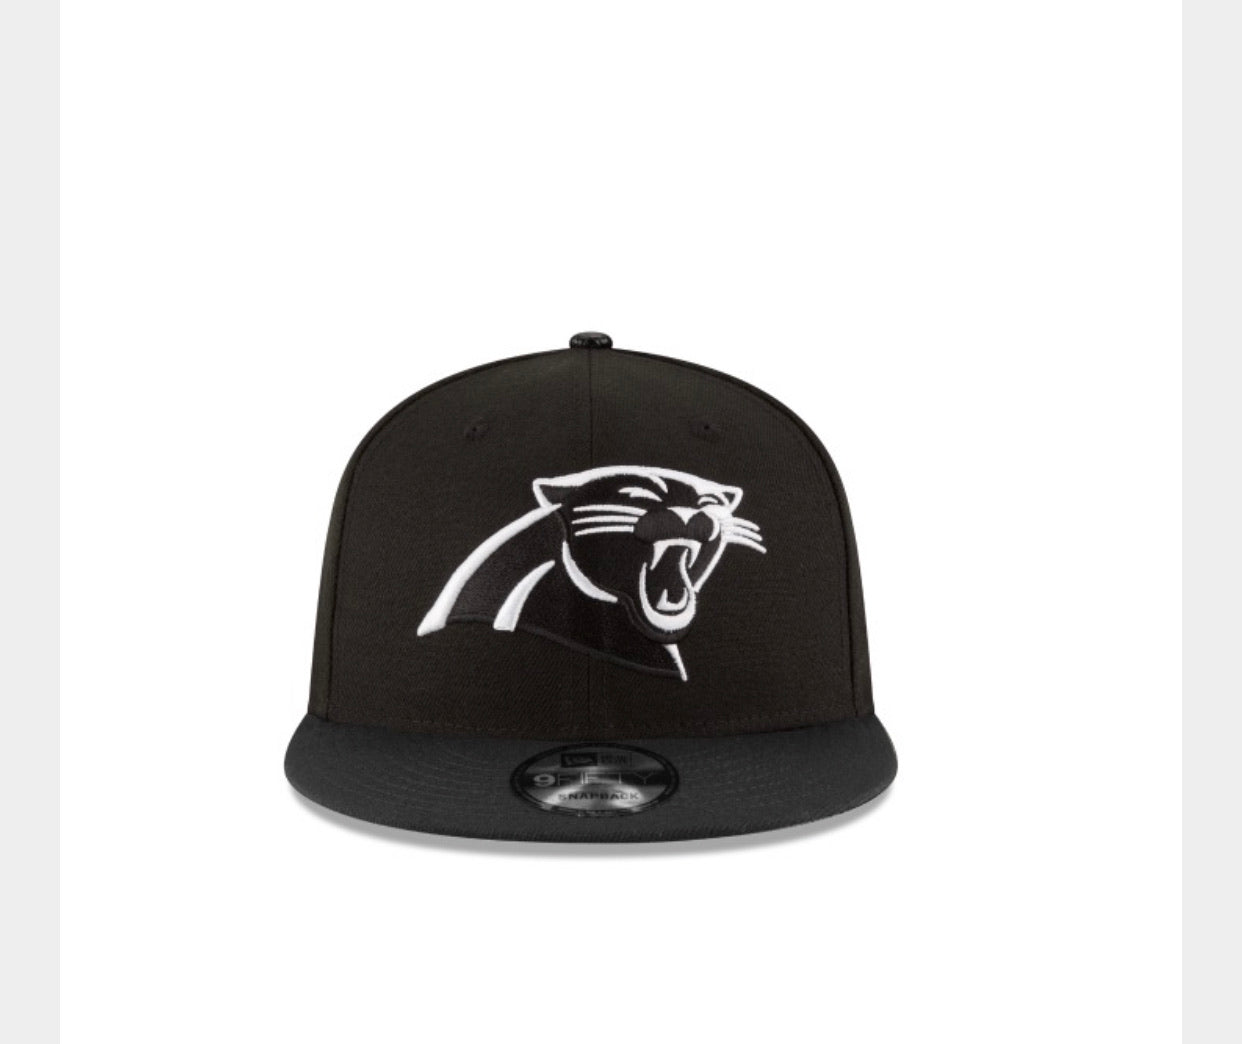 Carolina Panthers New Era 950 Basic Snap Back Hat - AtlanticCoastSports